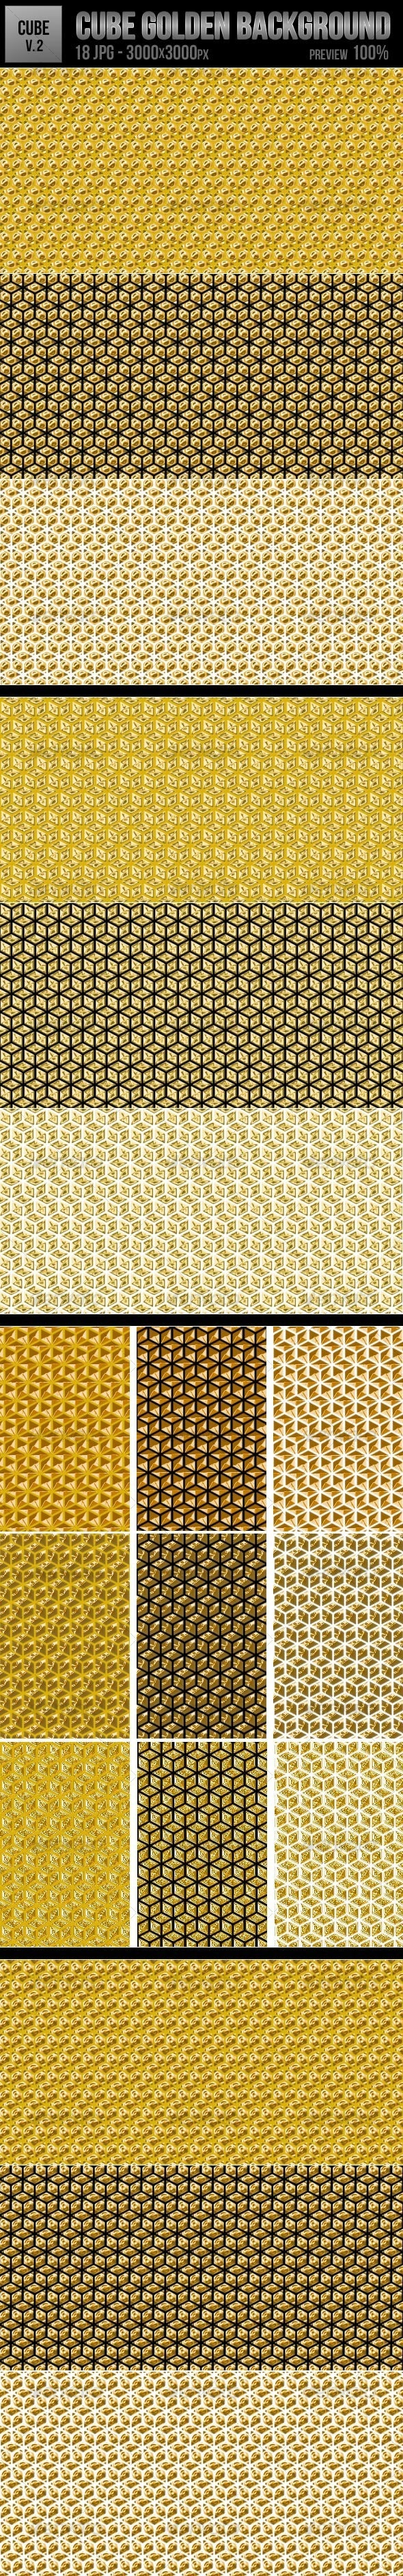 Cube Golden Backgrounds - Abstract Backgrounds